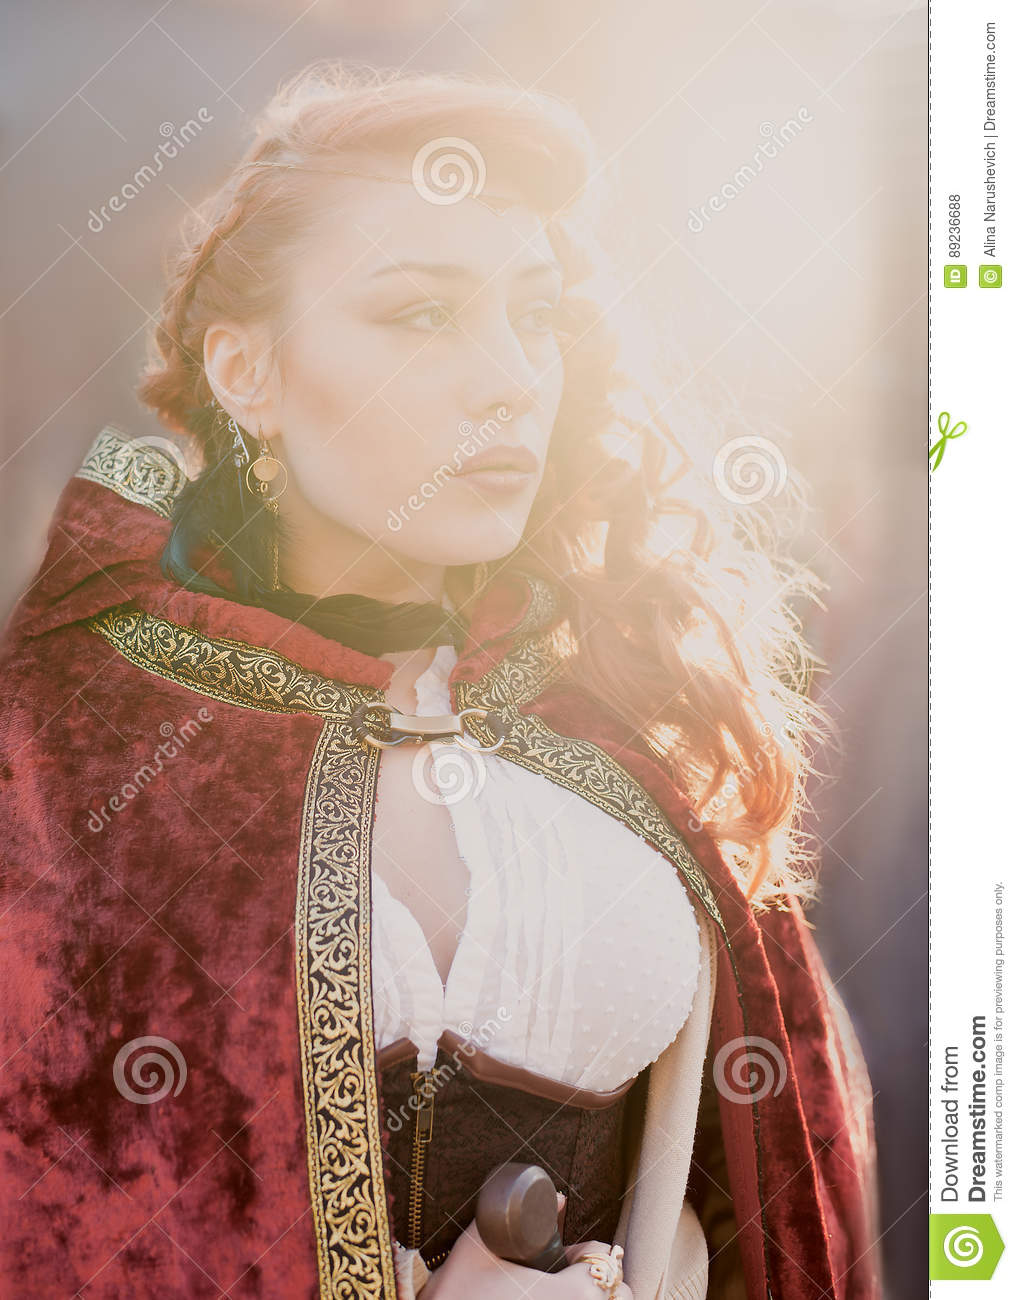 Warrior woman with sword in medieval clothes in sun light